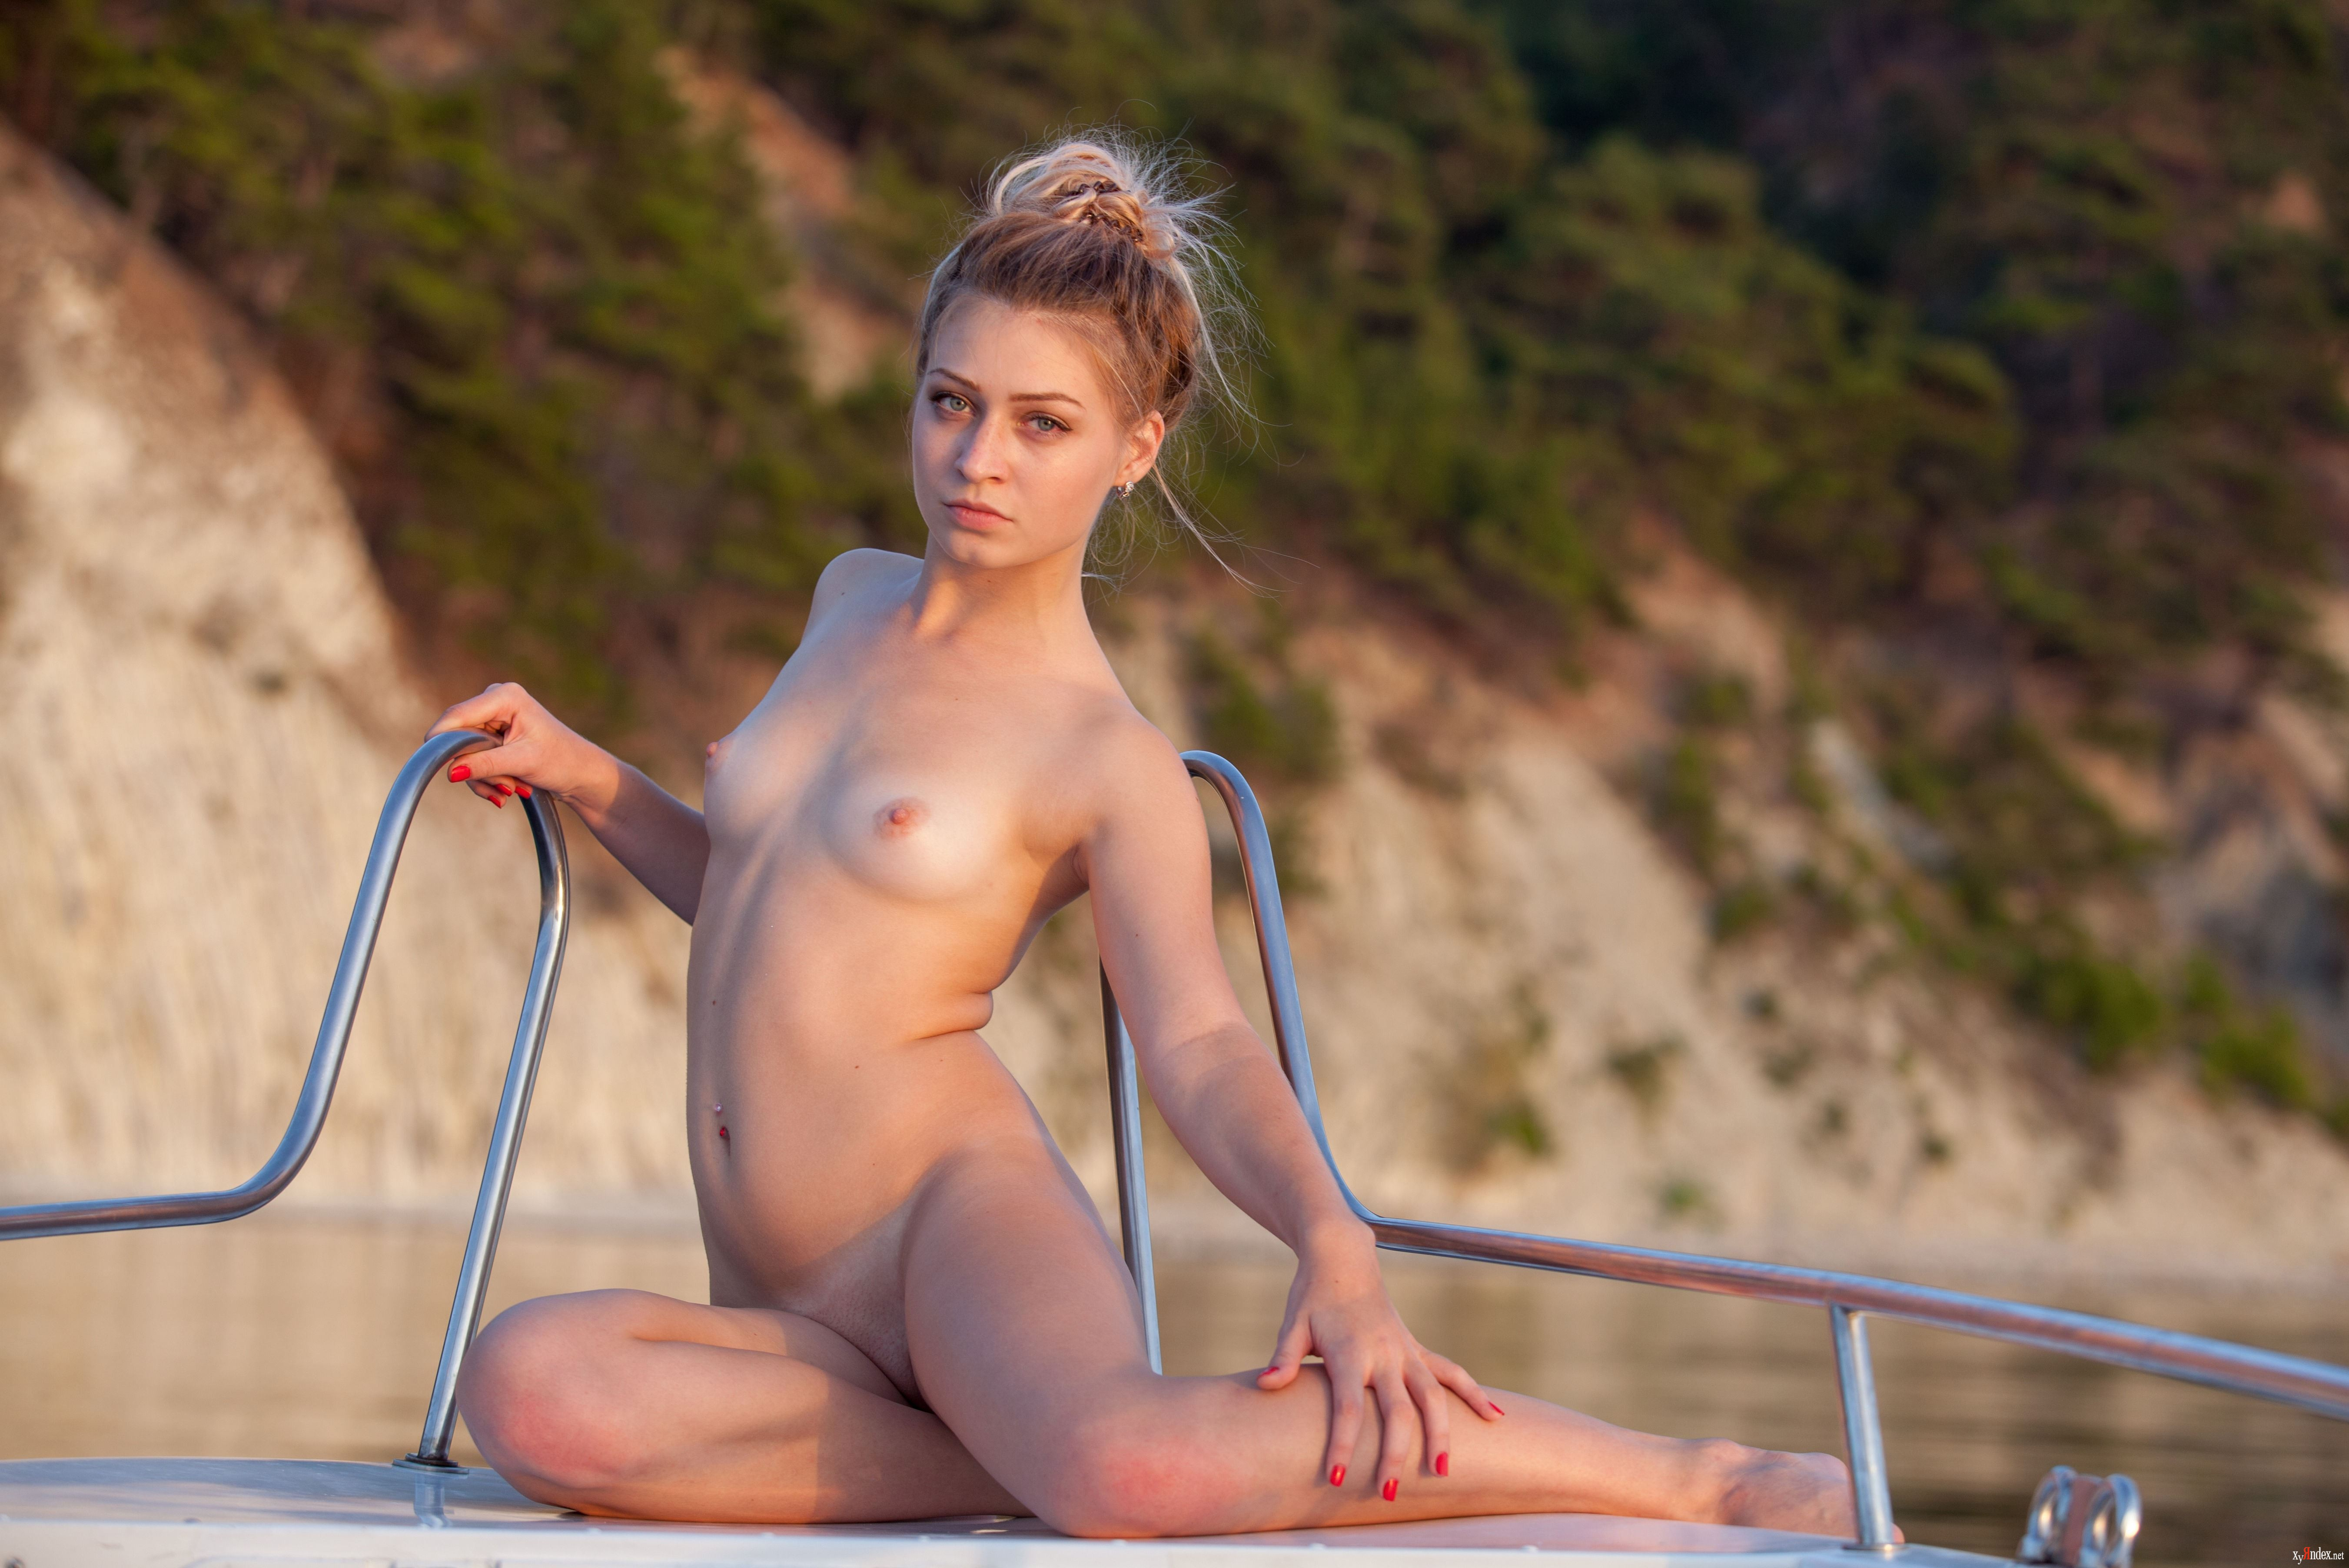 Shelby taylor nude centerfold search